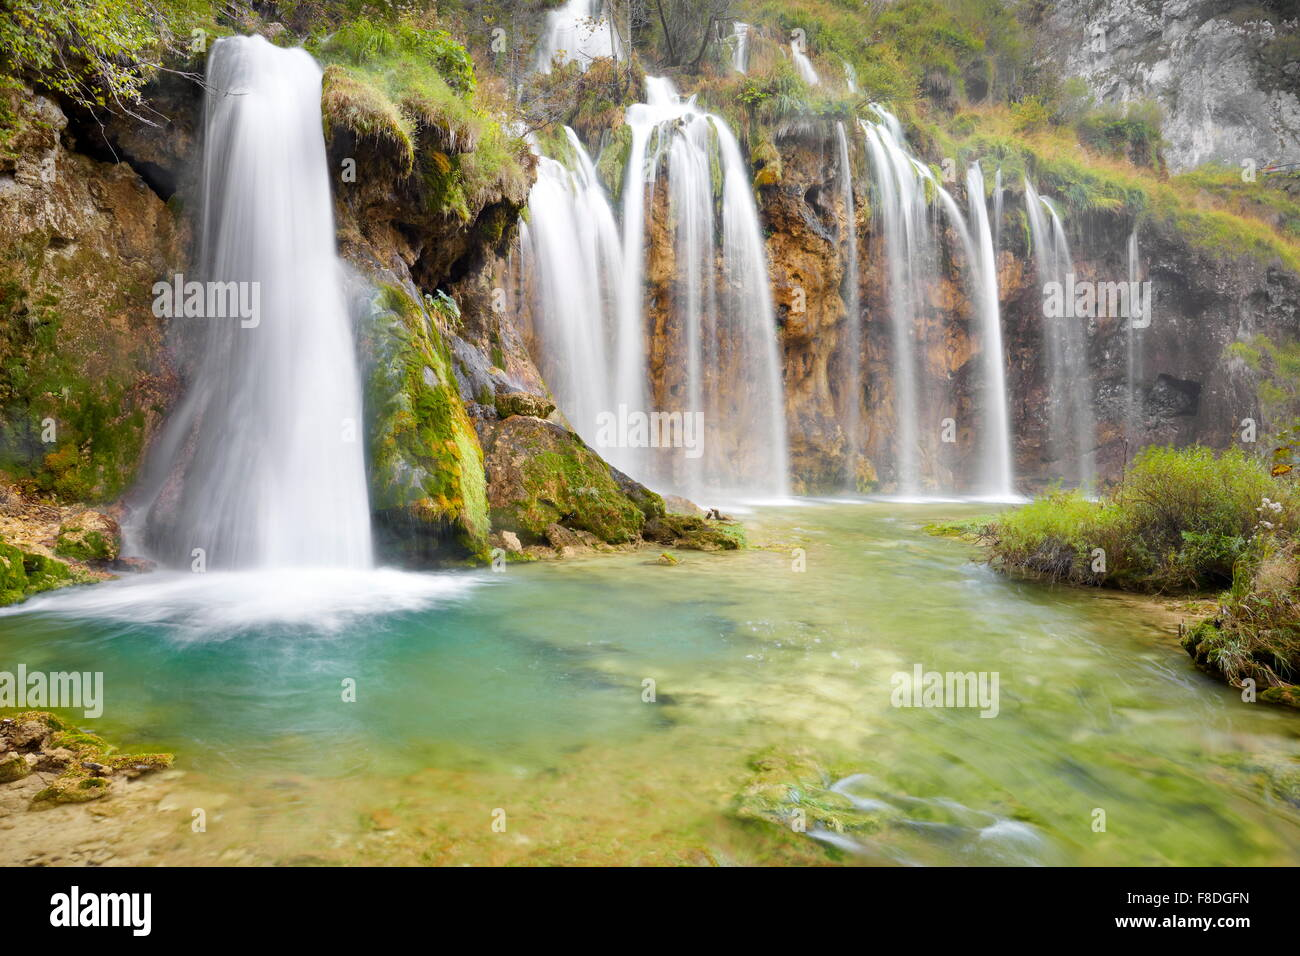 Waterfalls in Plitvice Lakes National Park, Croatia, UNESCO - Stock Image